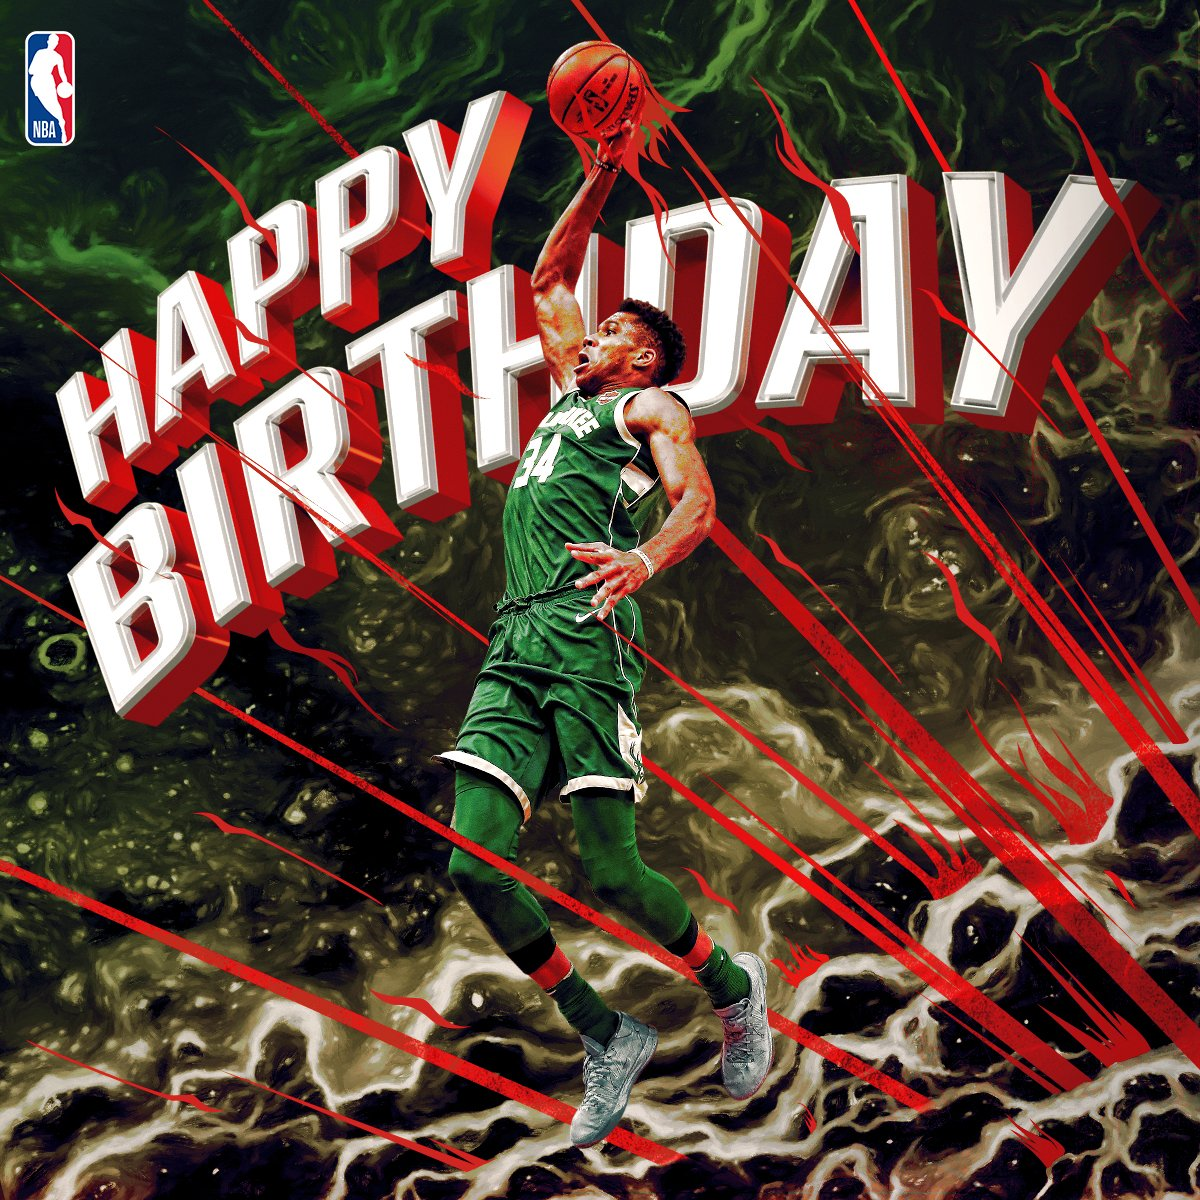 Join us in wishing Giannis Antetokounmpo a Happy 23rd Birthday!